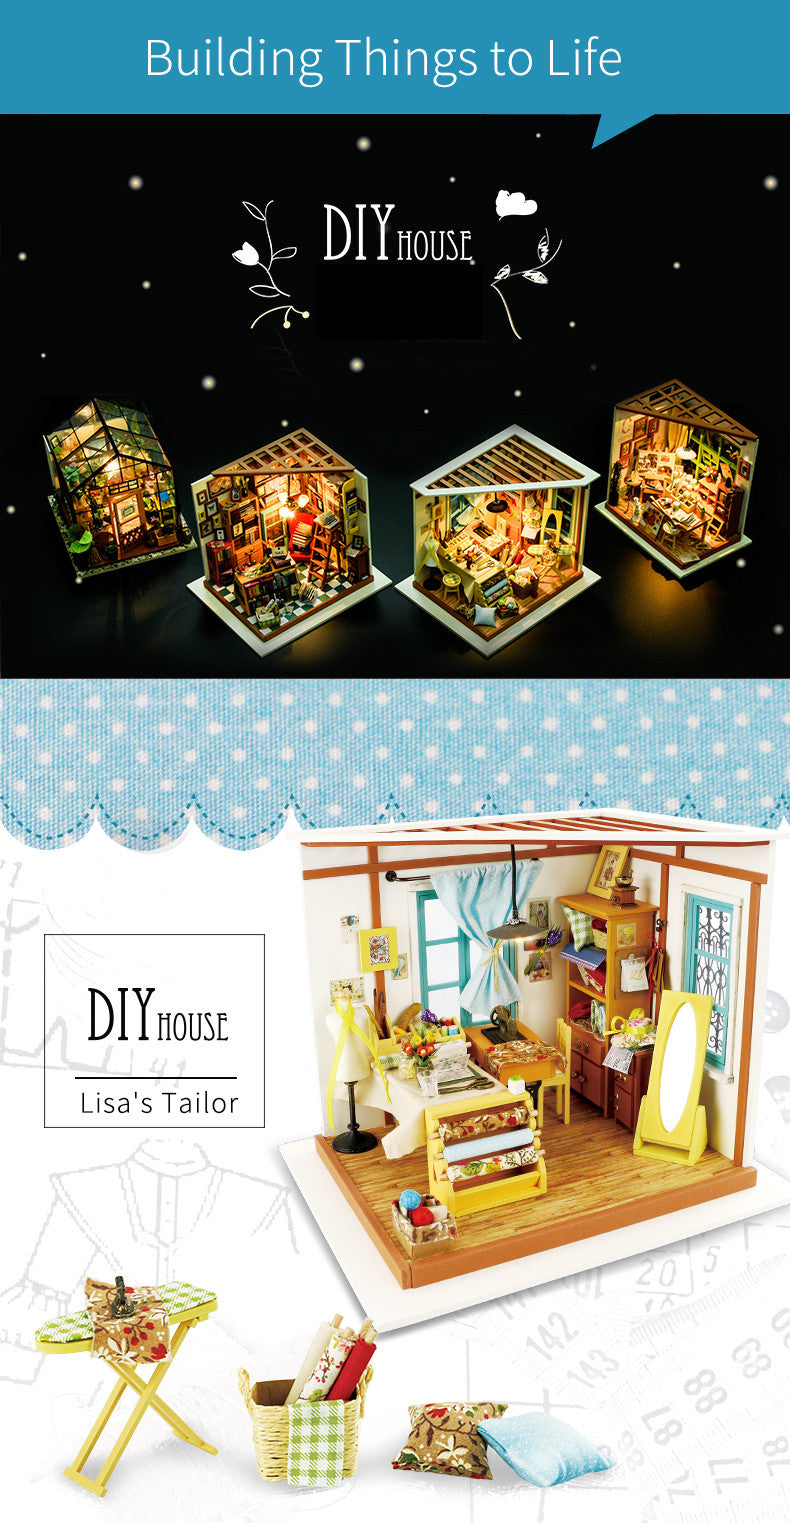 Cutebee Lisa's Tailor Robotime DIY Miniature Dollhouse Kit